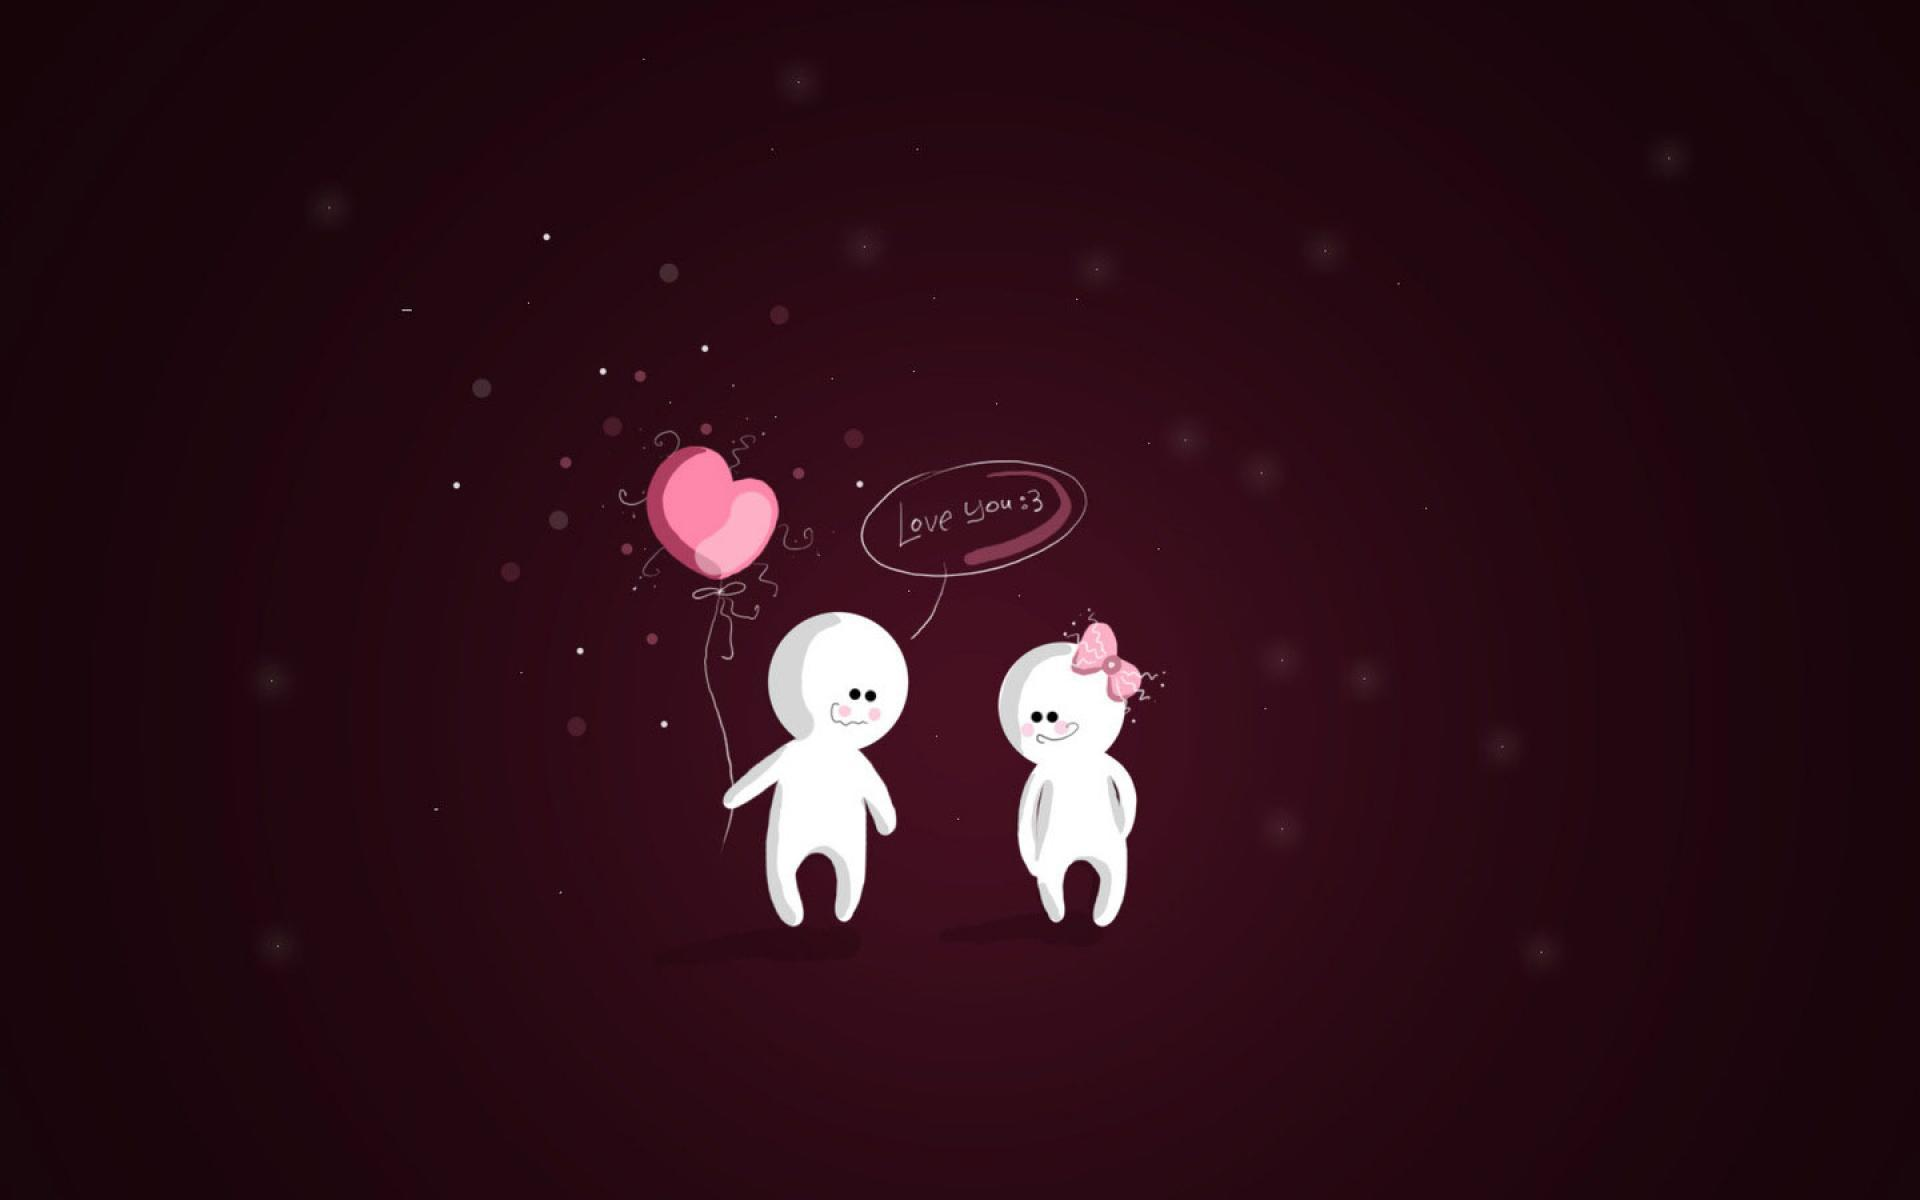 Love Wallpaper Hd cartoon : Love cartoon Wallpapers - Wallpaper cave